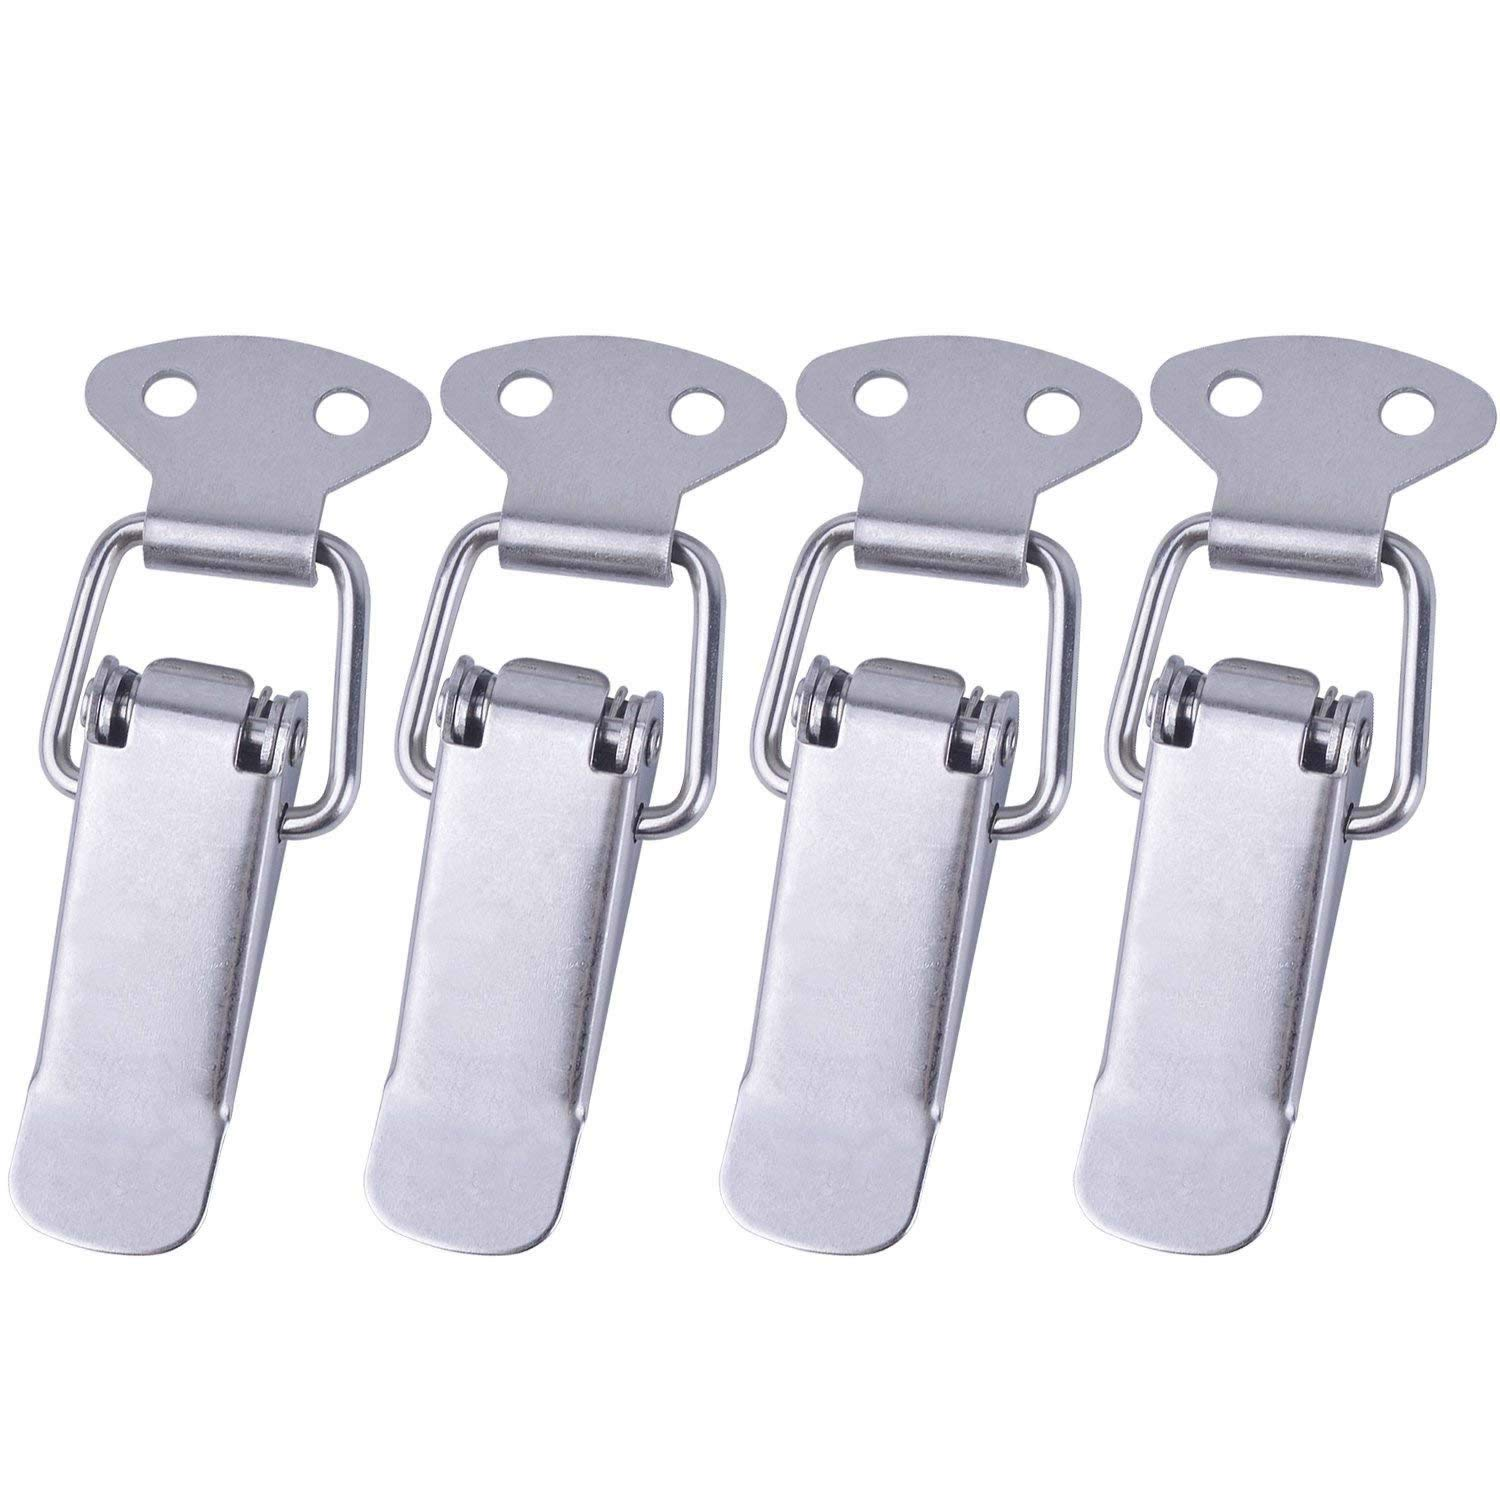 4 Sets Spring Loaded Toggle Latch Stainless Steel Clasp Hasp Clamp Clip for Toolbox/Closet/Chest Trunk Latch euhuton